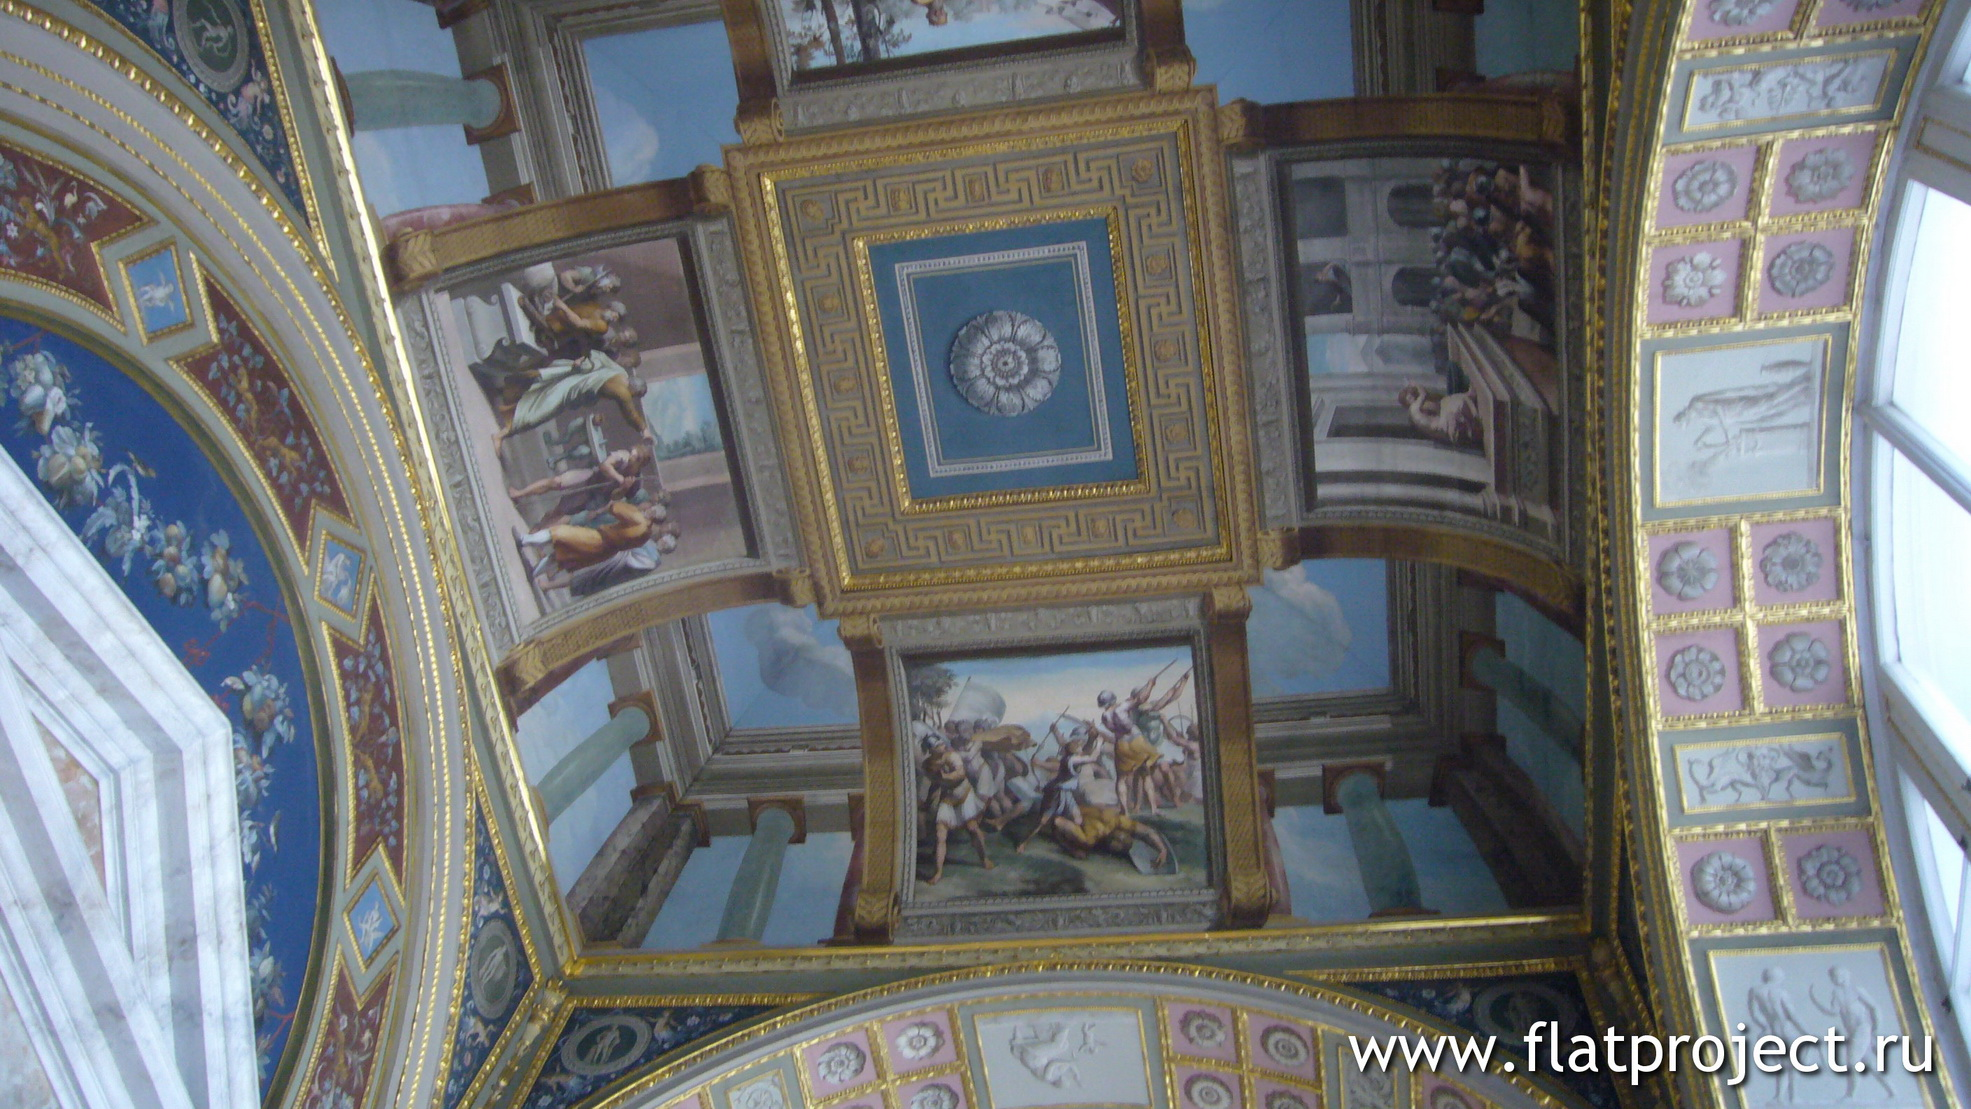 The State Hermitage museum interiors – photo 139